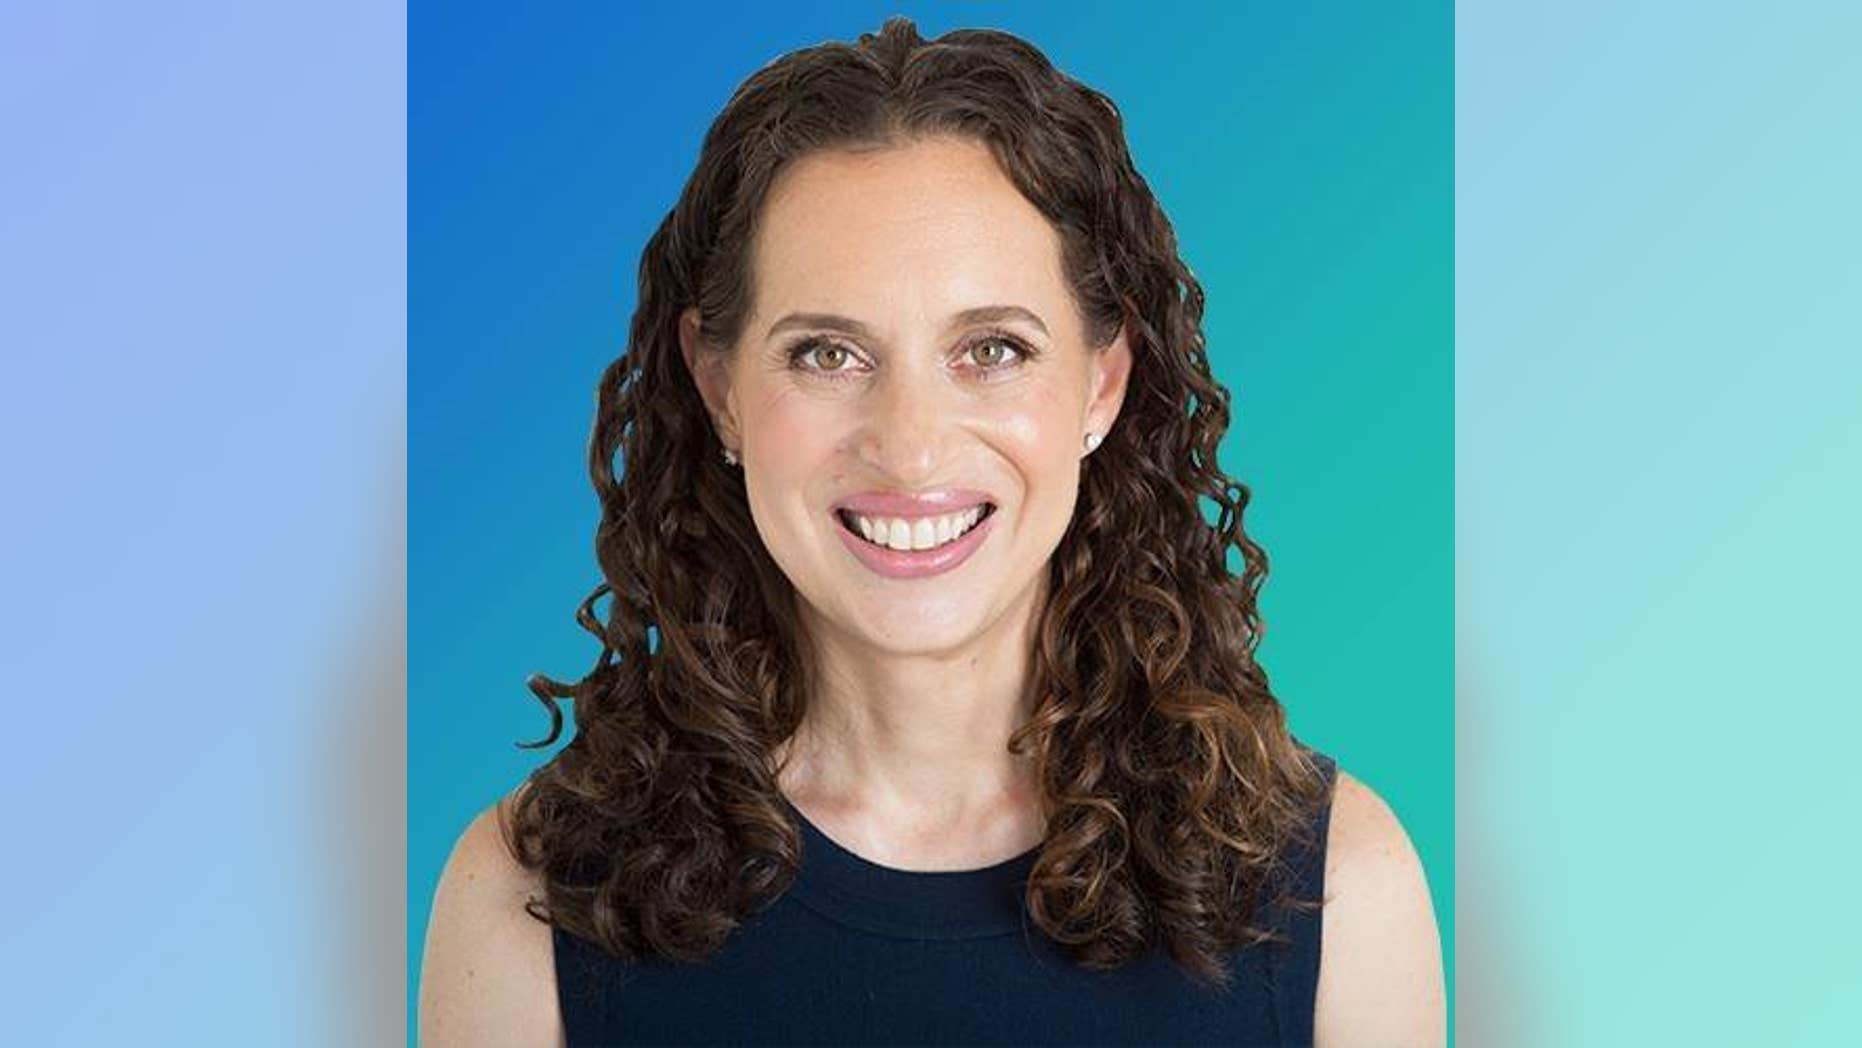 """Lauren Baer, a former State Department adviser in the Obama administration, is running for Congress in Florida. She once penned an article claiming the U.S. response to the Sept. 11, 2001 terrorist attacks was a """"moment of hypocrisy."""""""